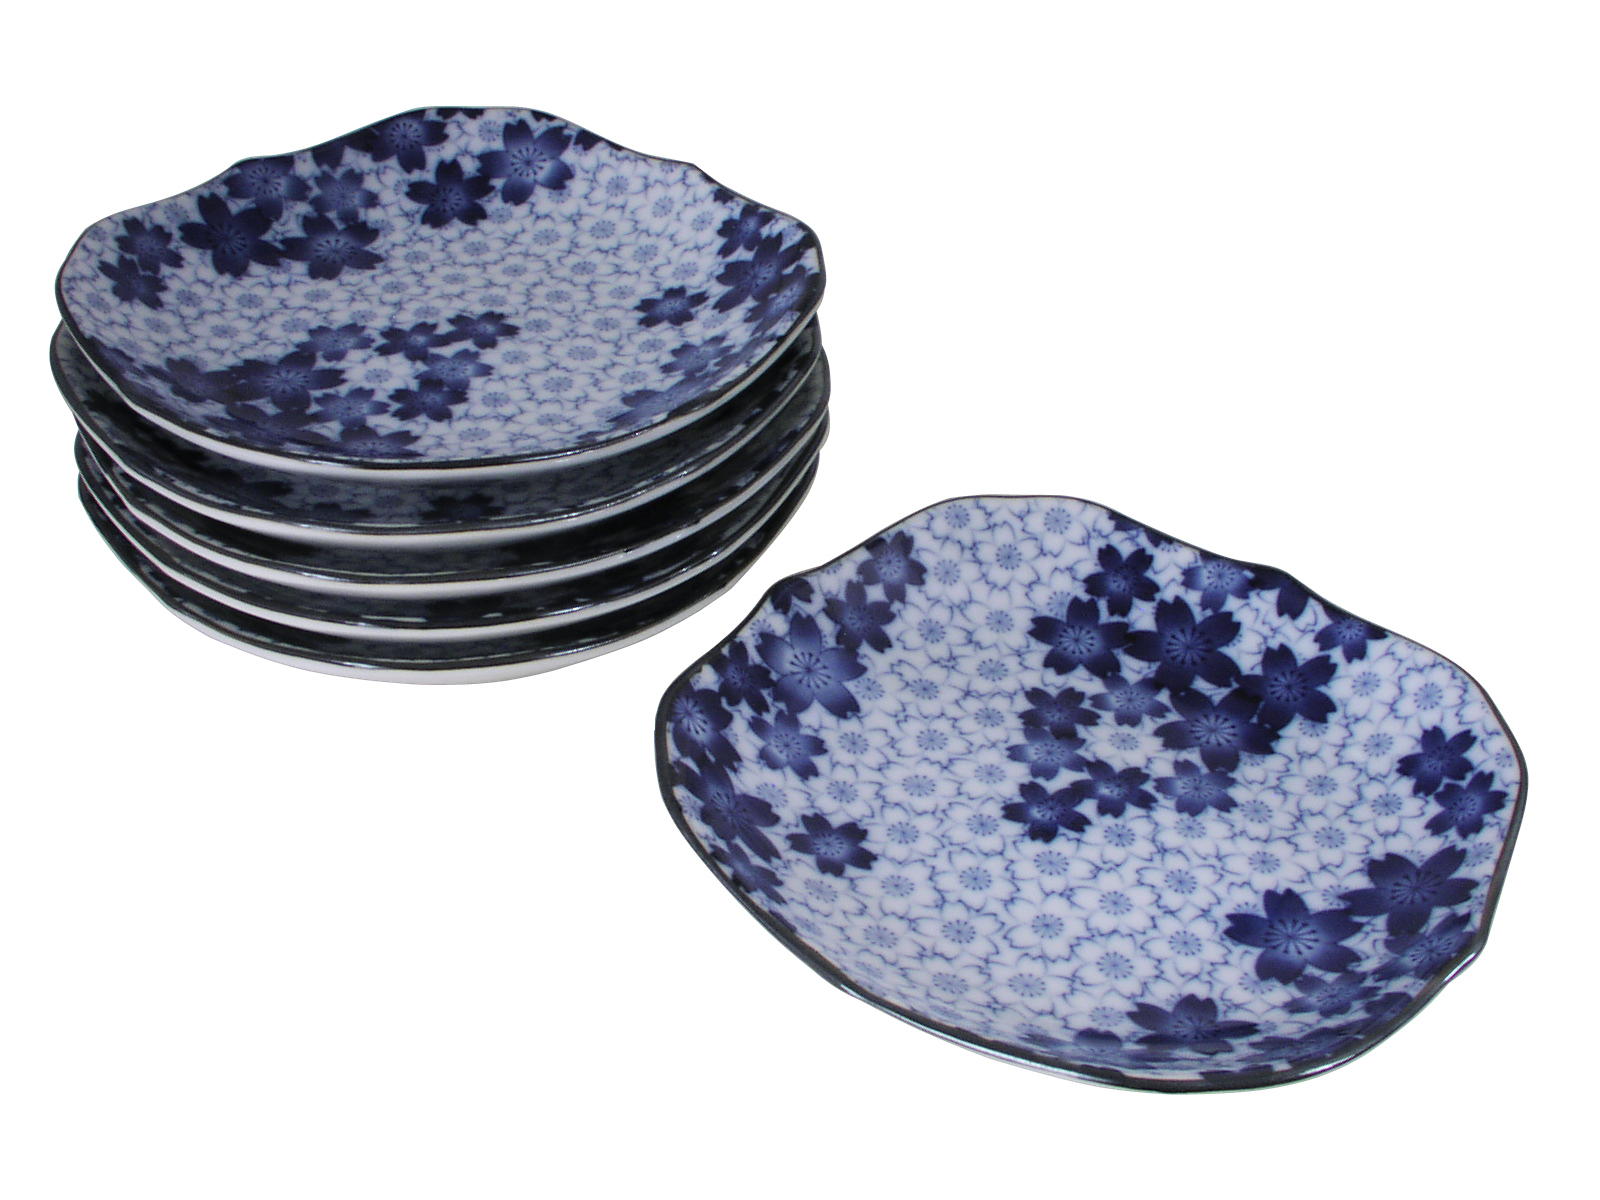 Royal blue sakura blue and white dinnerware plate set for six 4